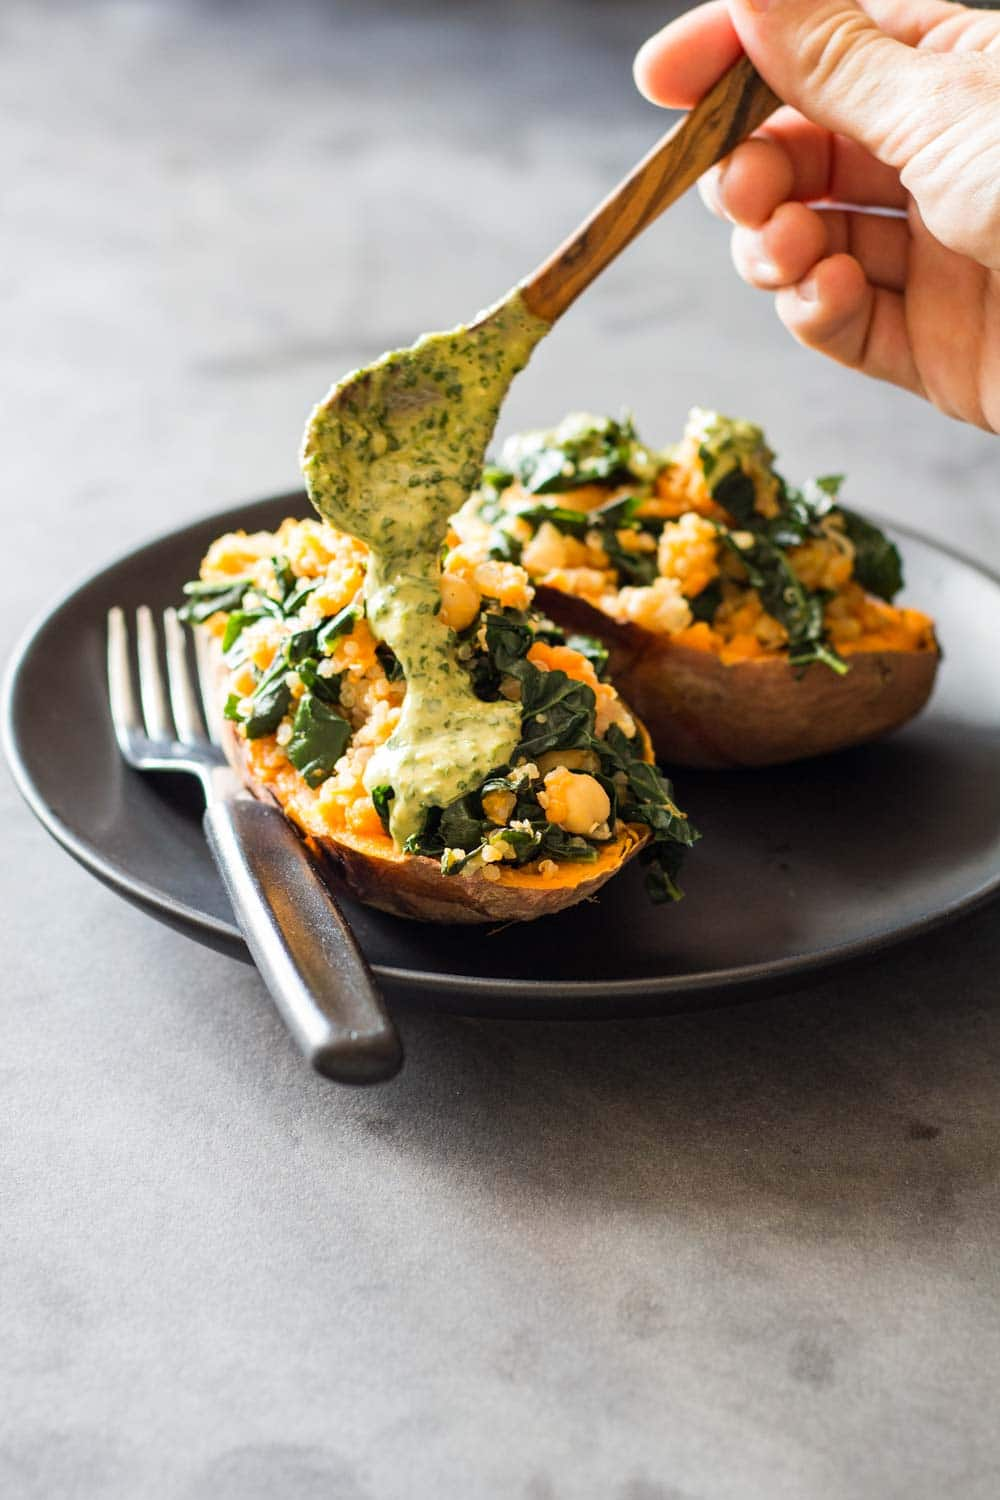 Tahini Herb Sauce being drizzled on healthy stuffed sweet potatoes